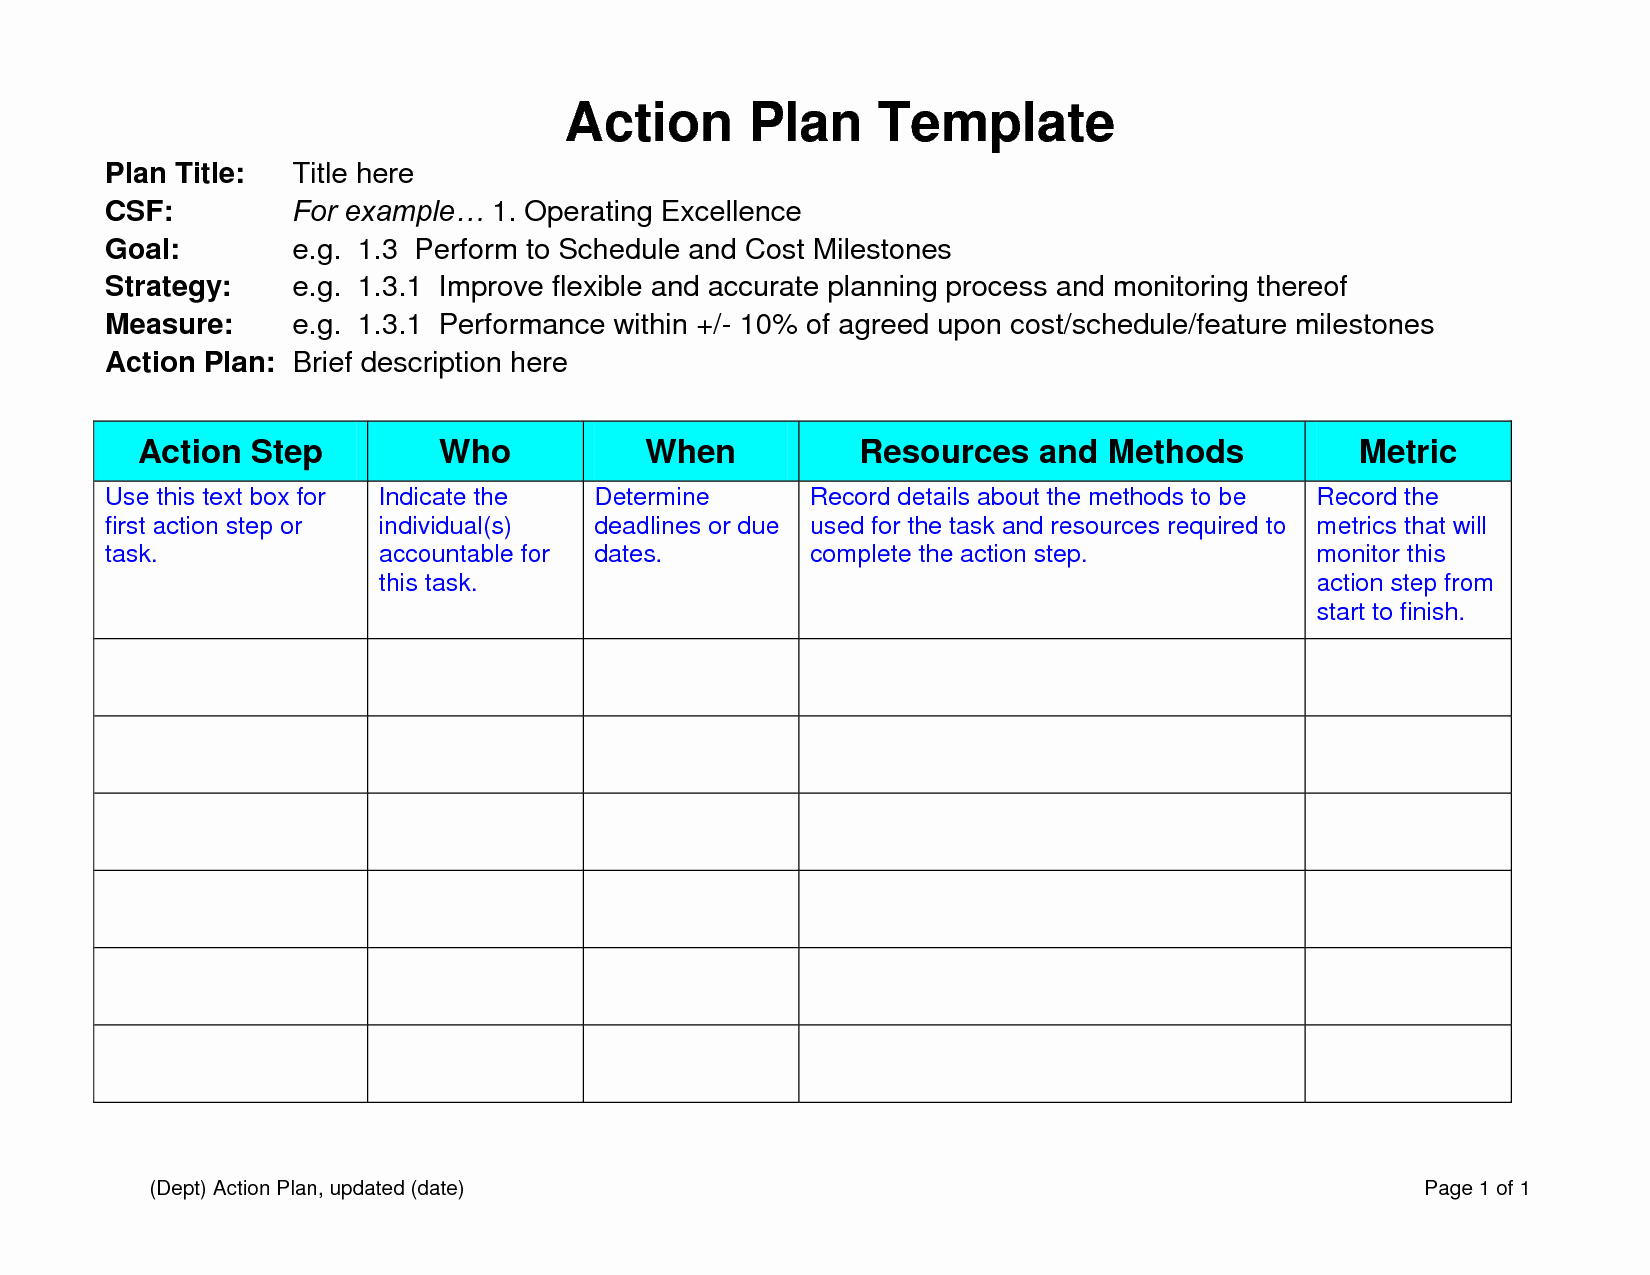 Free Action Plan Template Lovely Plan Action Template